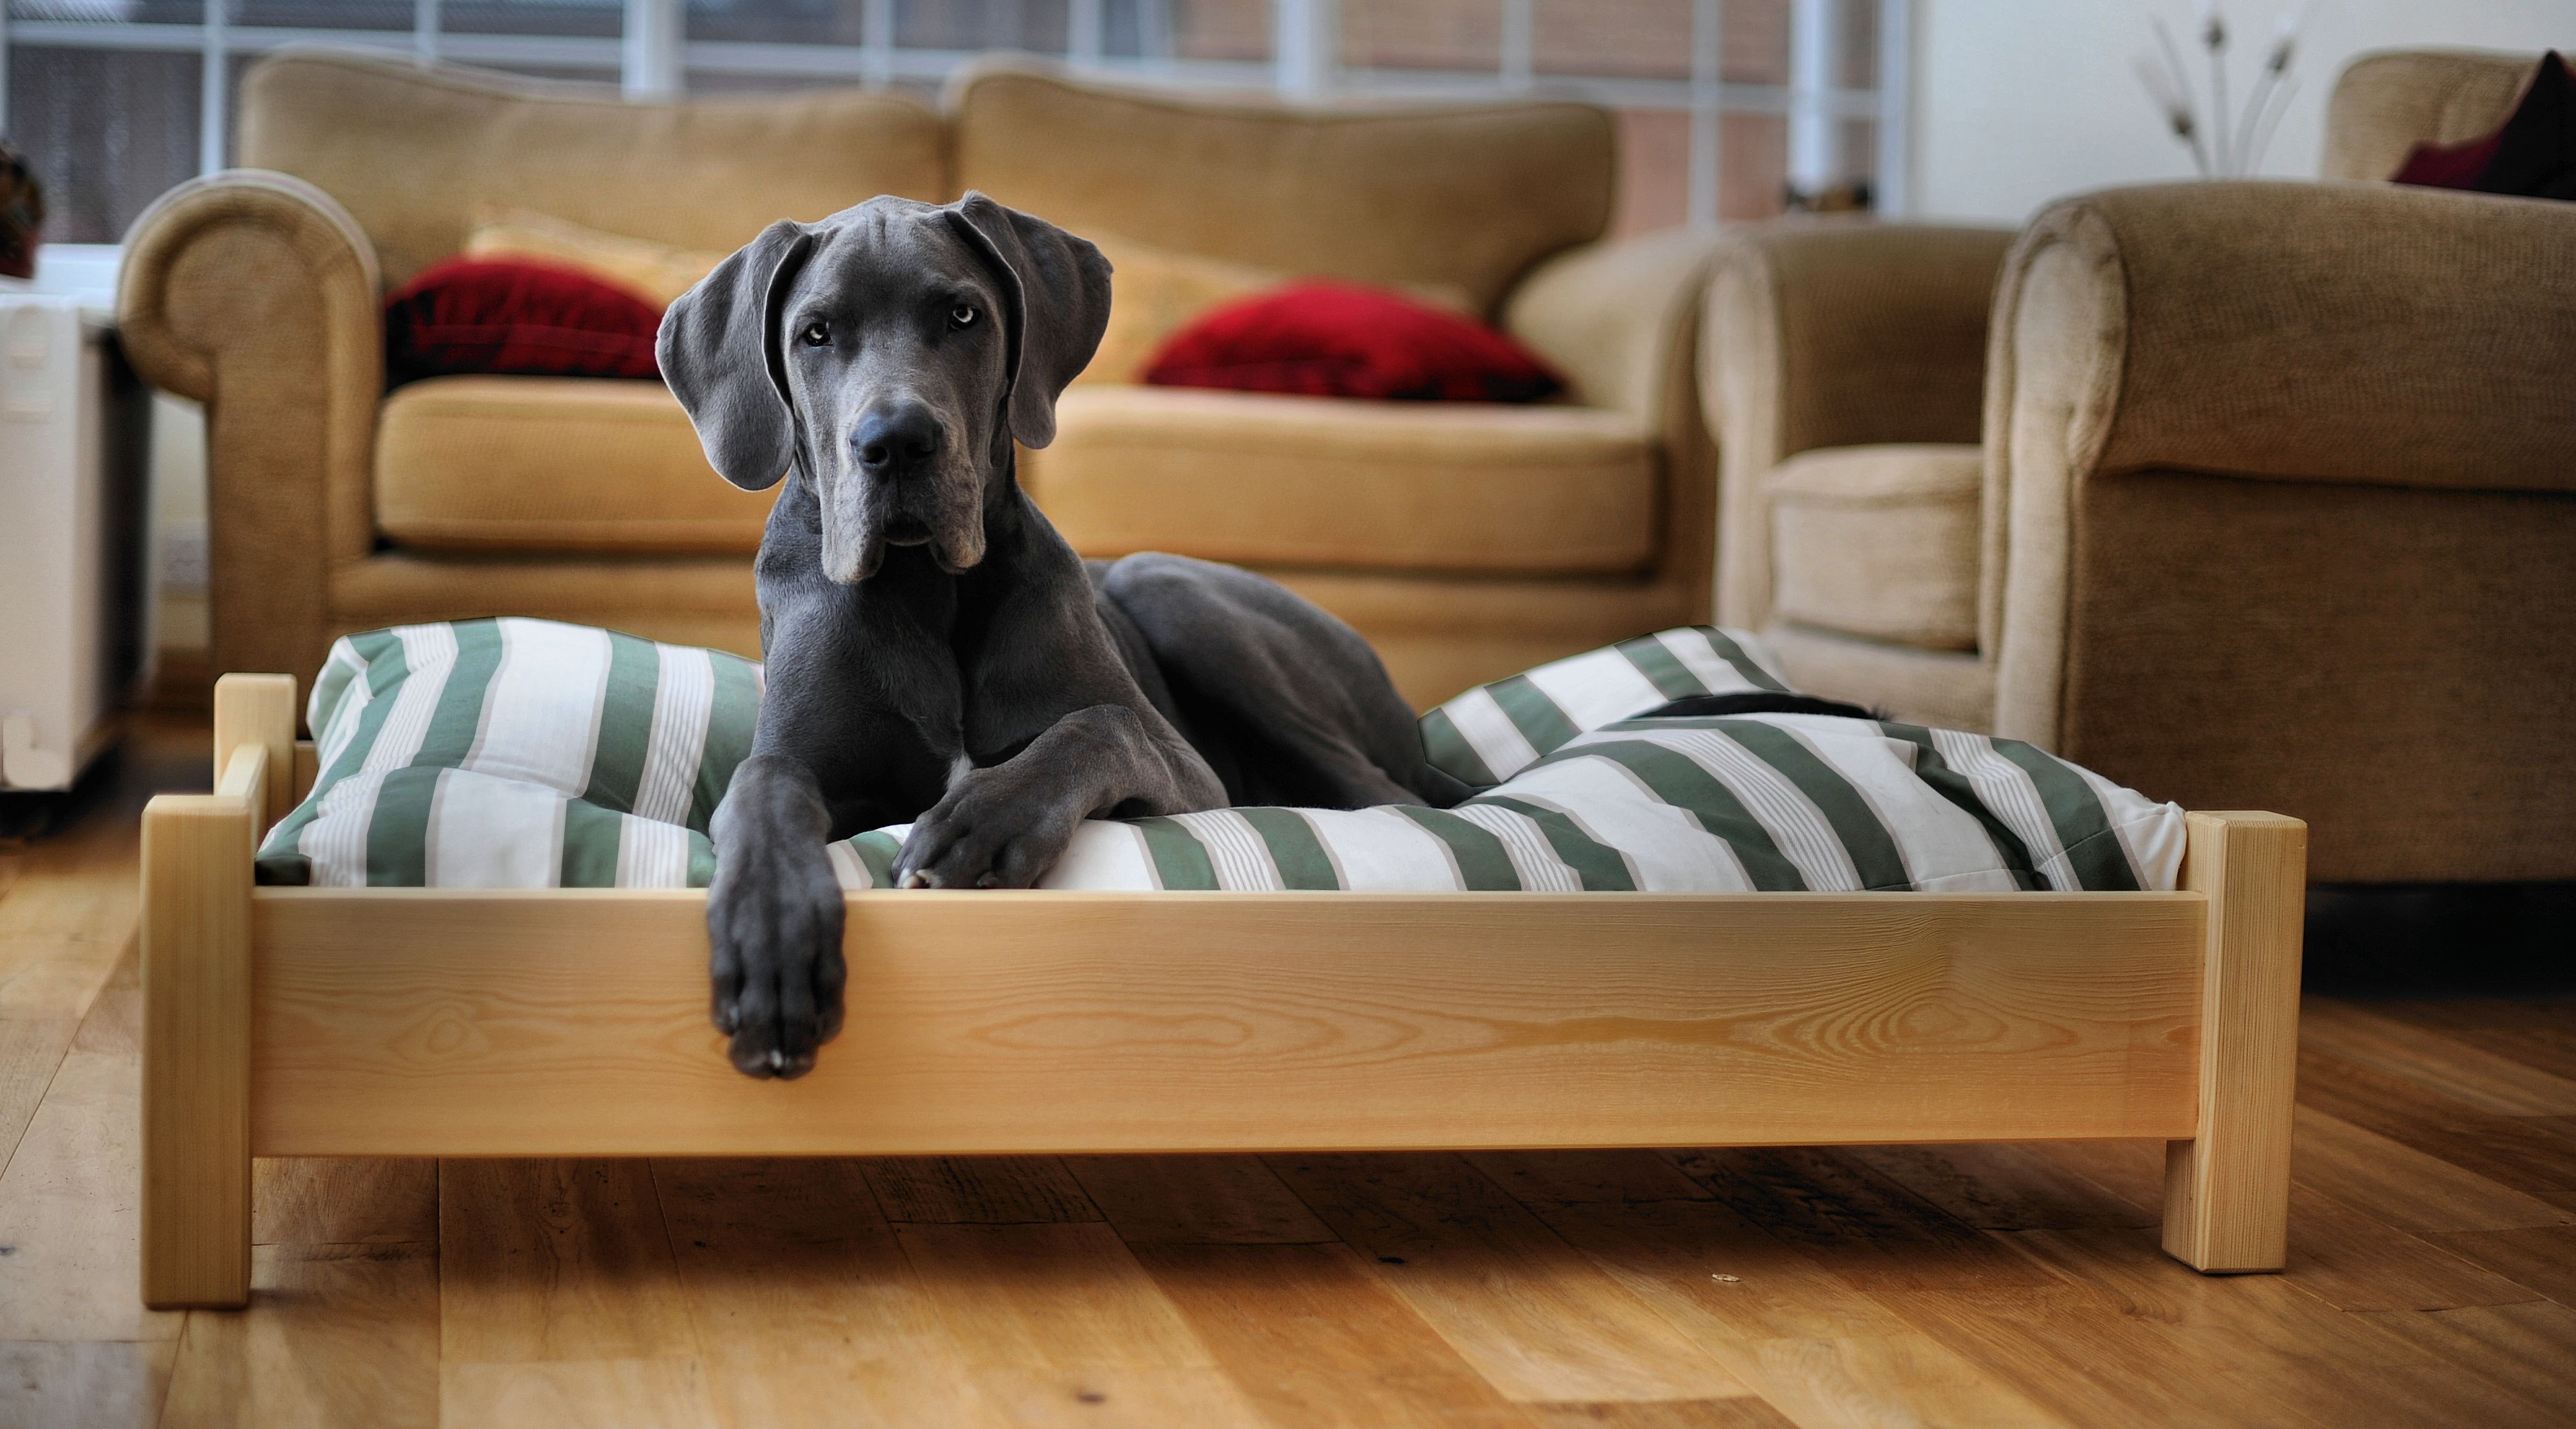 Who really wants to sleep on the floor? This raised dog bed would  definitely give